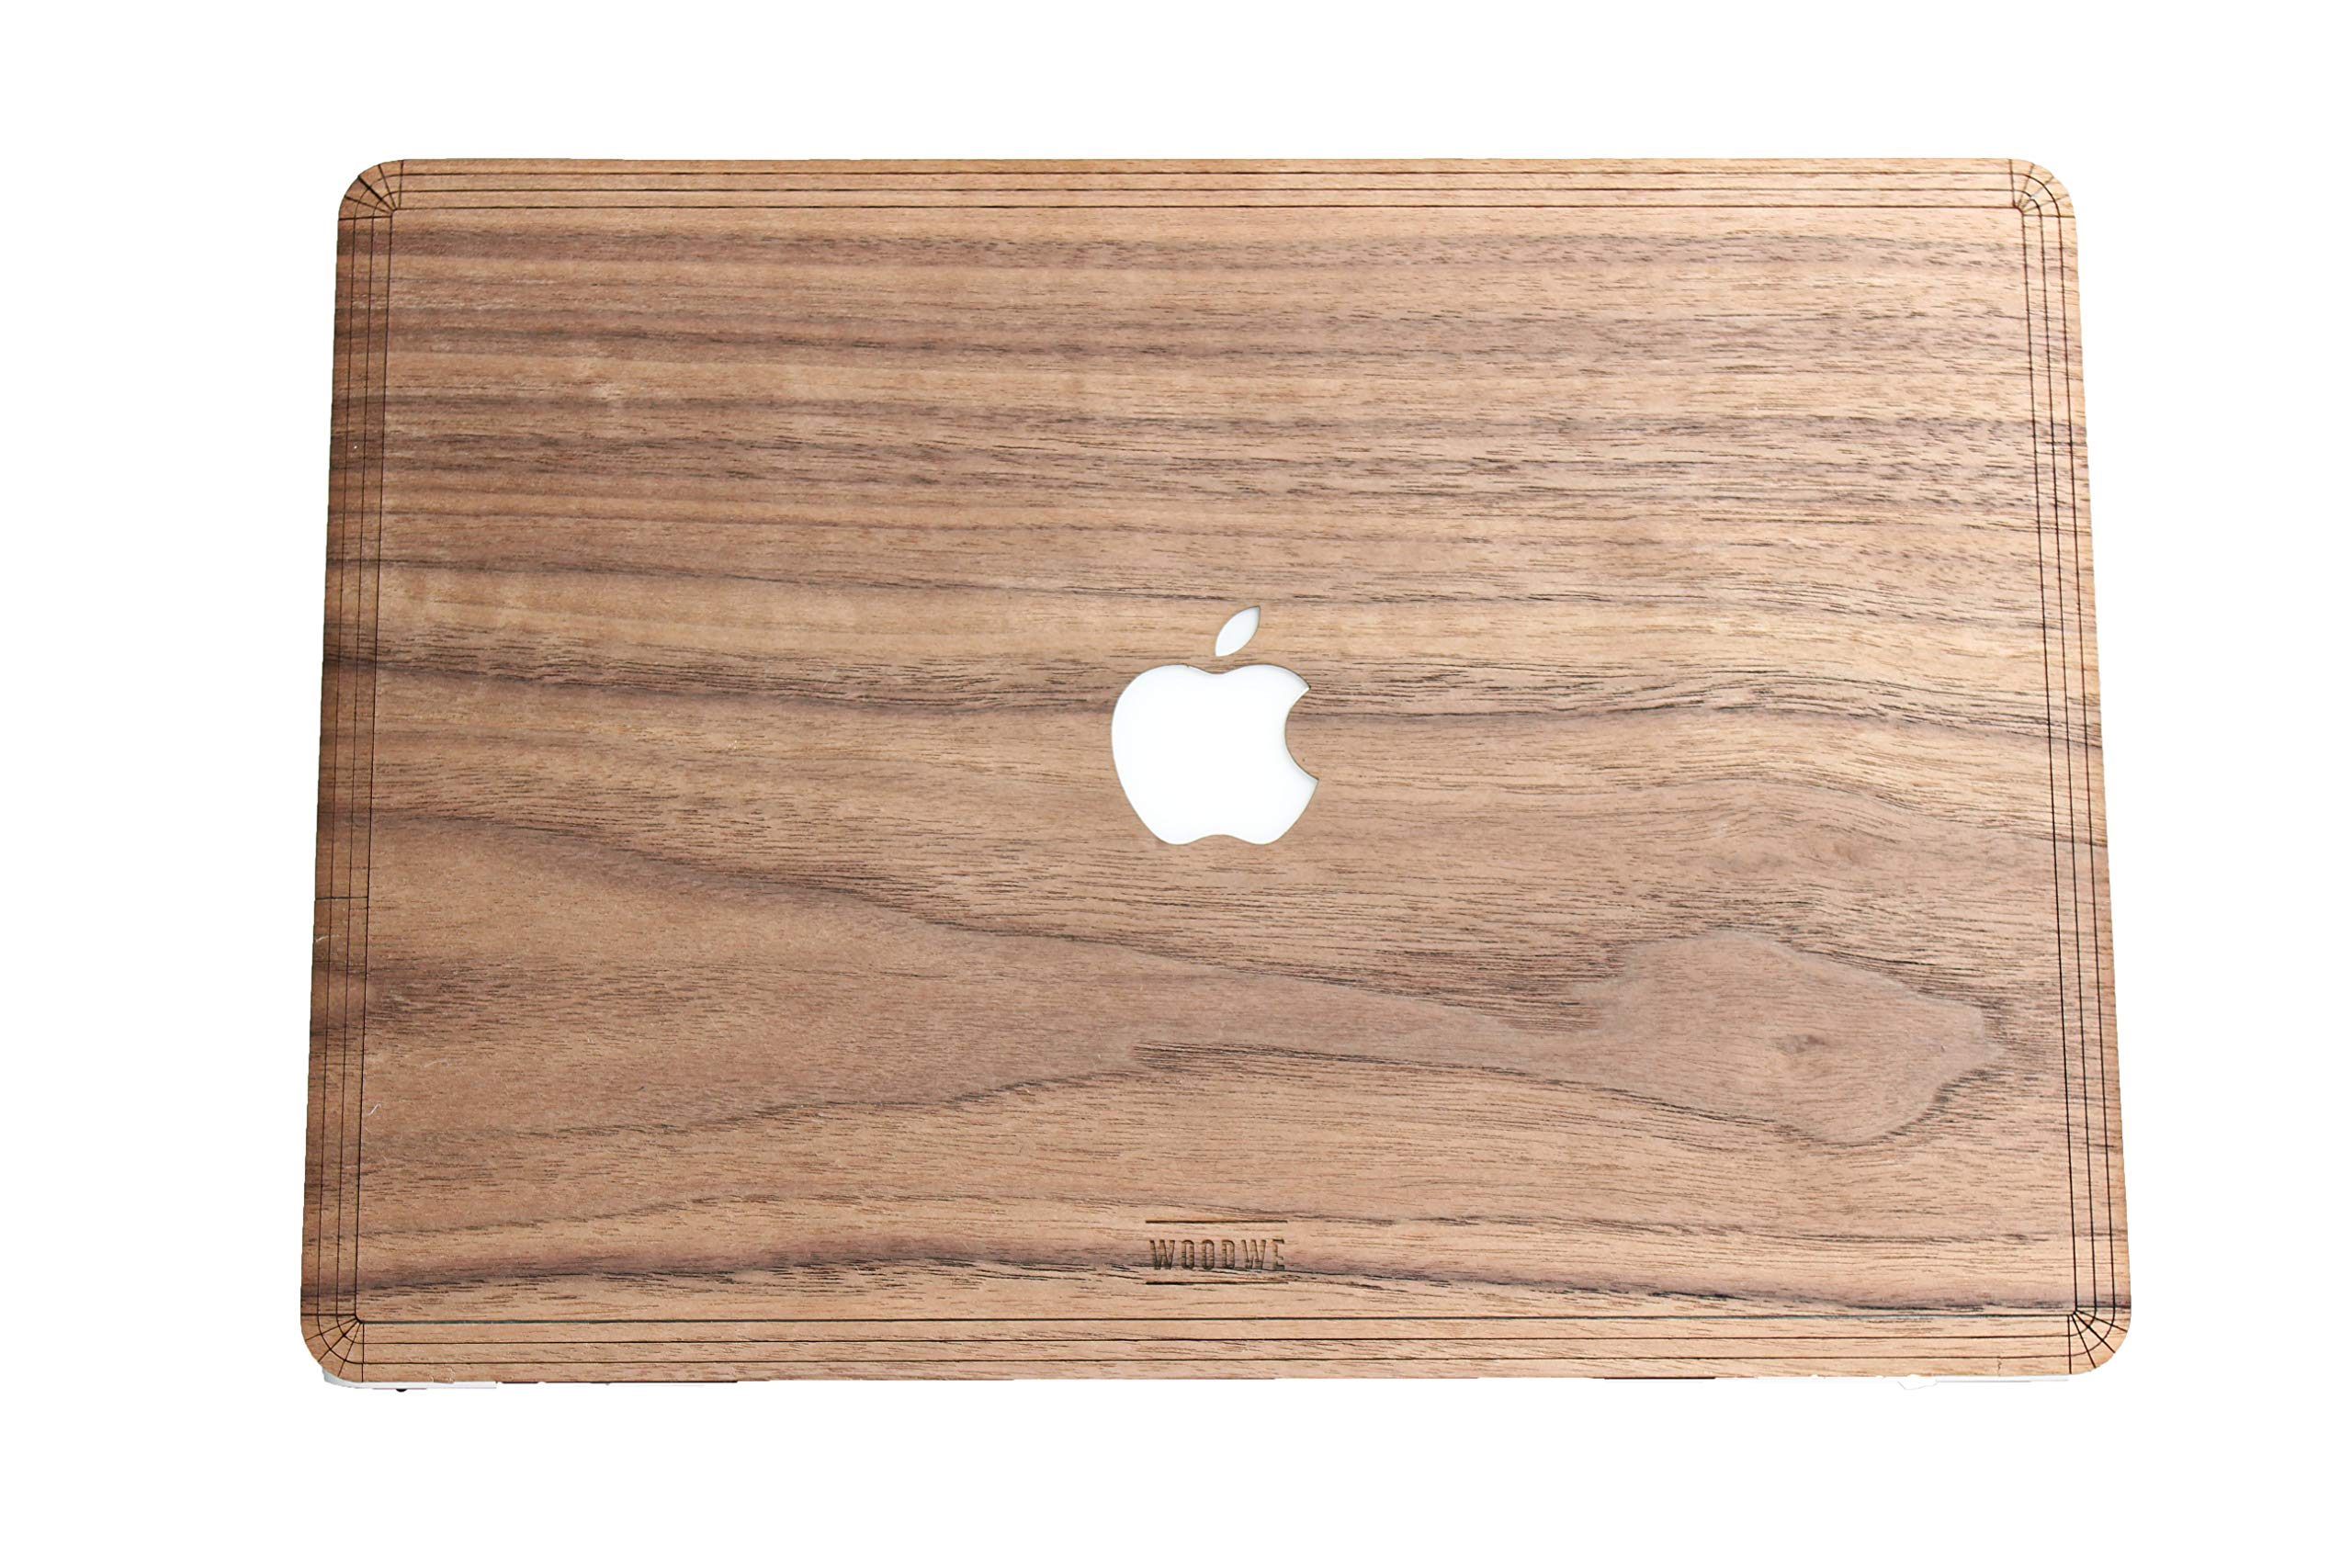 WOODWE Real Wood MacBook Skin Sticker Decal for Mac pro 13 inch Retina Display | Model: A1425/A1502; Late 2012 - Early 2015 | Genuine & Natural Walnut Wood | TOP&Bottom Cover by WOODWE (Image #1)